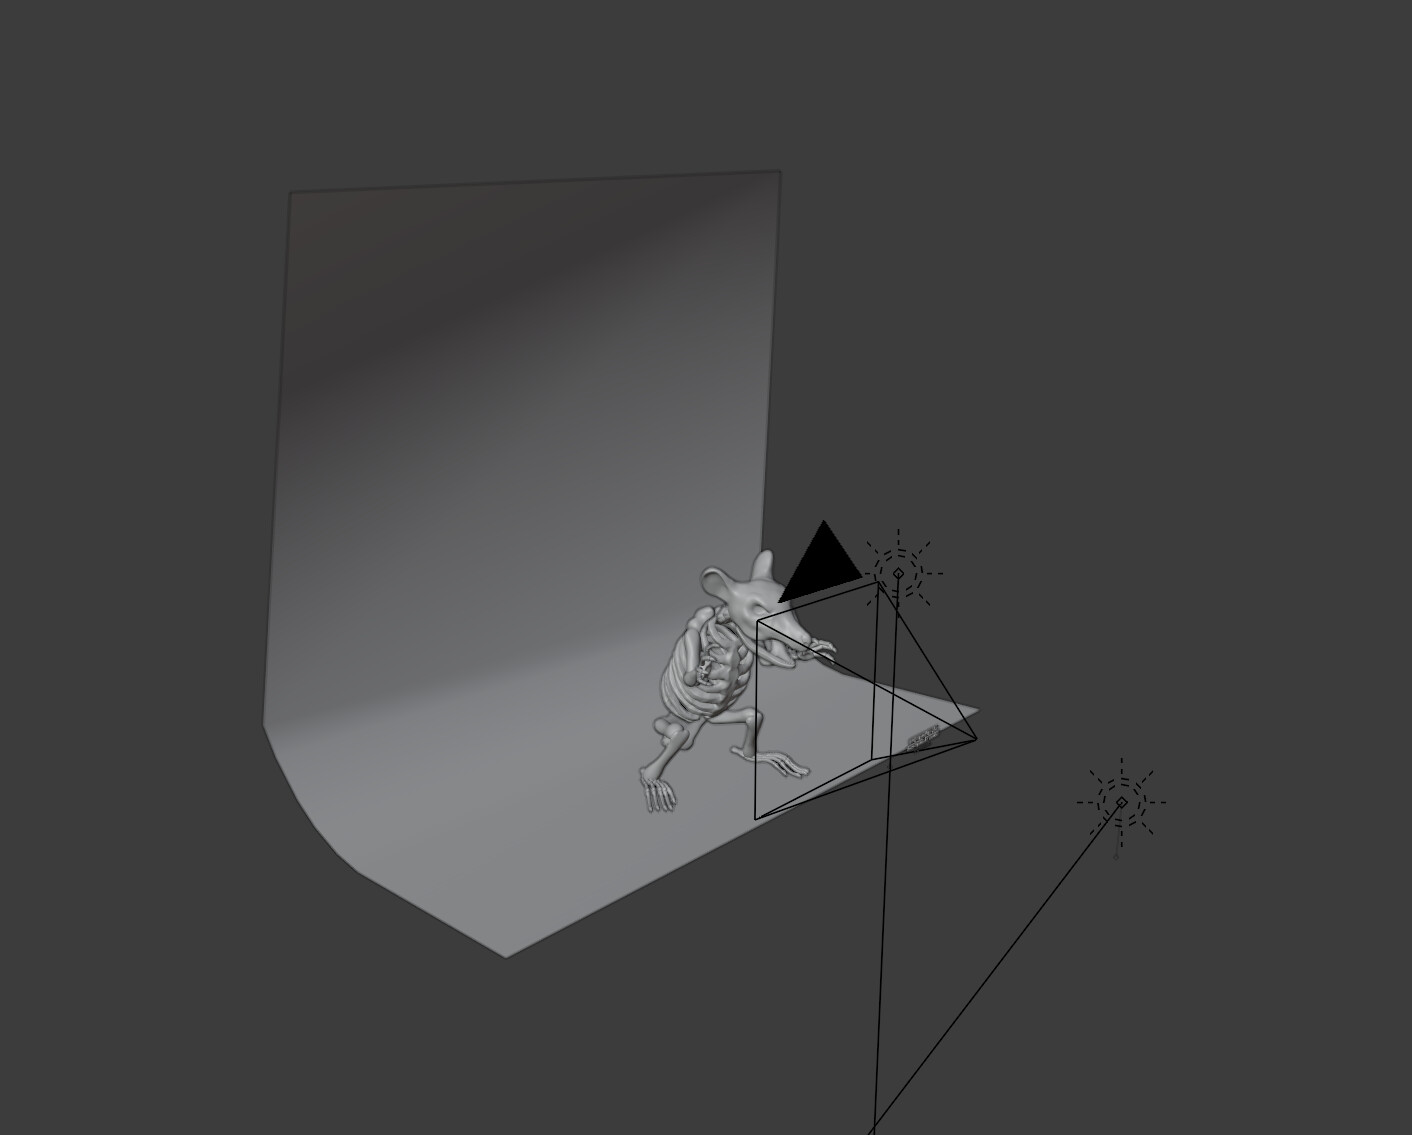 Skeleton model was created in Blender and then rendered on a backdrop in Blender as well.